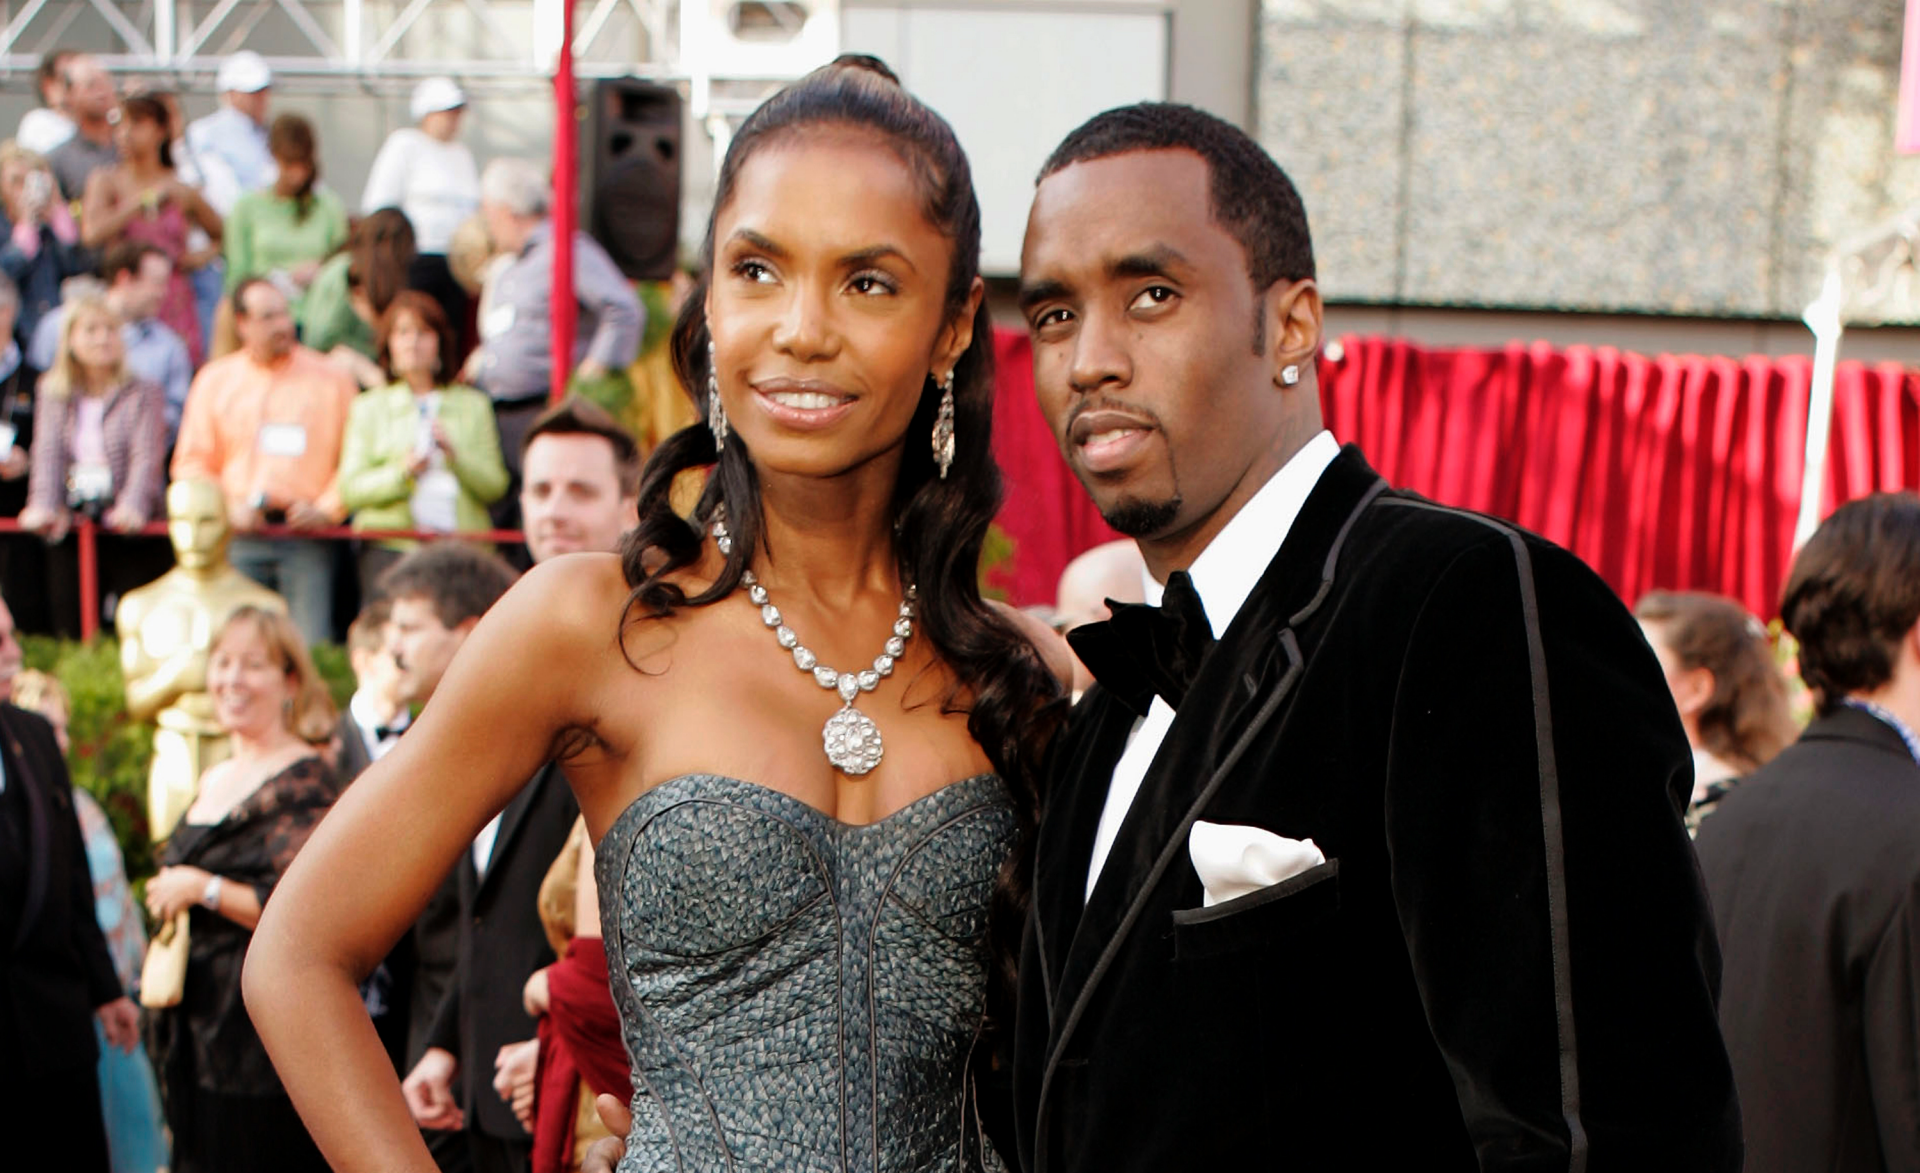 Westlake Legal Group 11015057-ContentBroker_contentid-66dc55d72b6542d3803cc9bc8ddae421 Diddy pays tribute to his ex, Kim Porter, 1 year after her death: 'I wish you were here' Nate Day fox-news/entertainment/music fox-news/entertainment/events/departed fox-news/entertainment/celebrity-news fox-news/entertainment fox news fnc/entertainment fnc d0311e9e-4271-52a6-8b6c-33b91df1b7be article